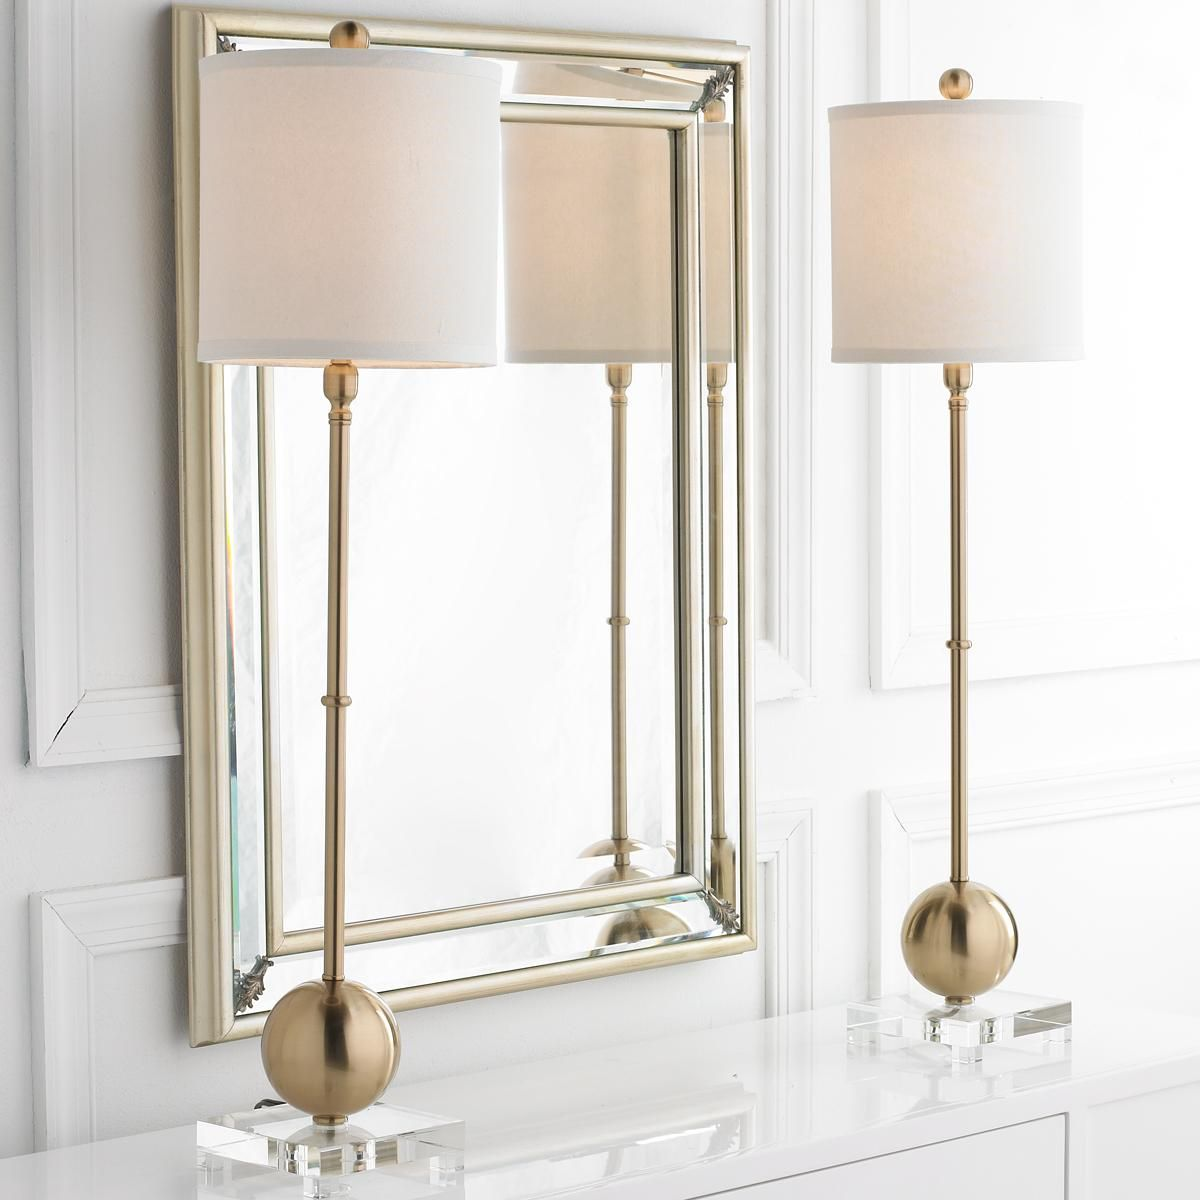 Brushed Gold Sphere Candlestick Lamp An appealing blend of brushed ...